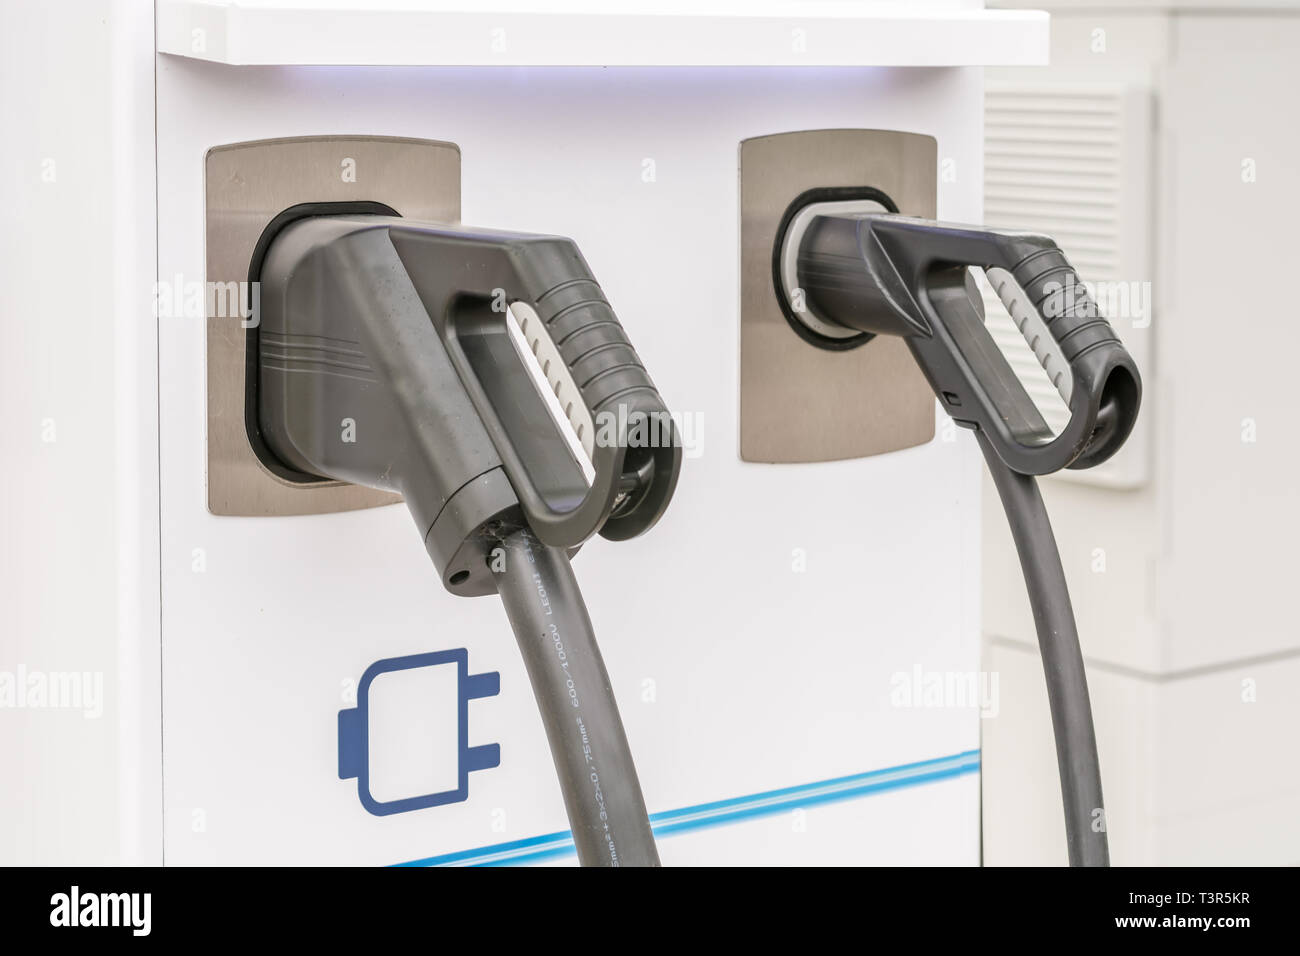 Two charging stations for electric cars Stock Photo